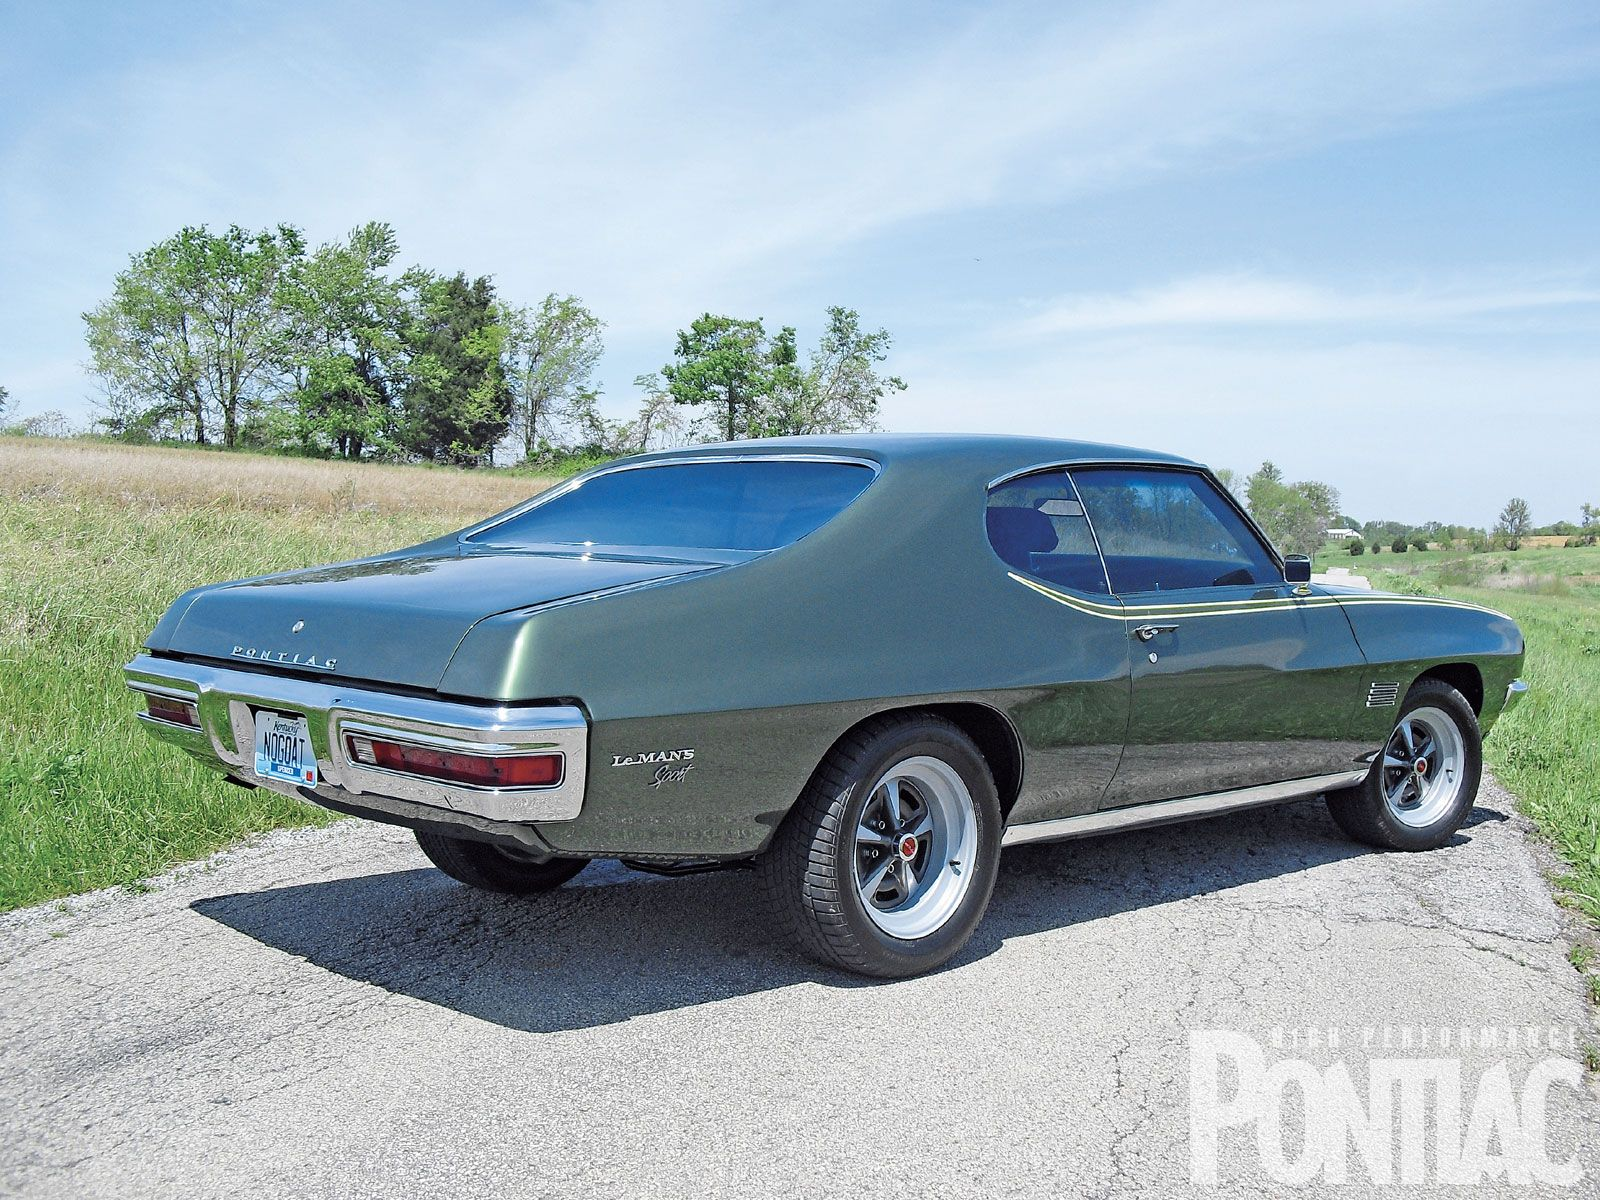 1970 pontiac lemans sport mine had two tone paint with pin striping and a 427 engine it could fly  [ 1600 x 1200 Pixel ]